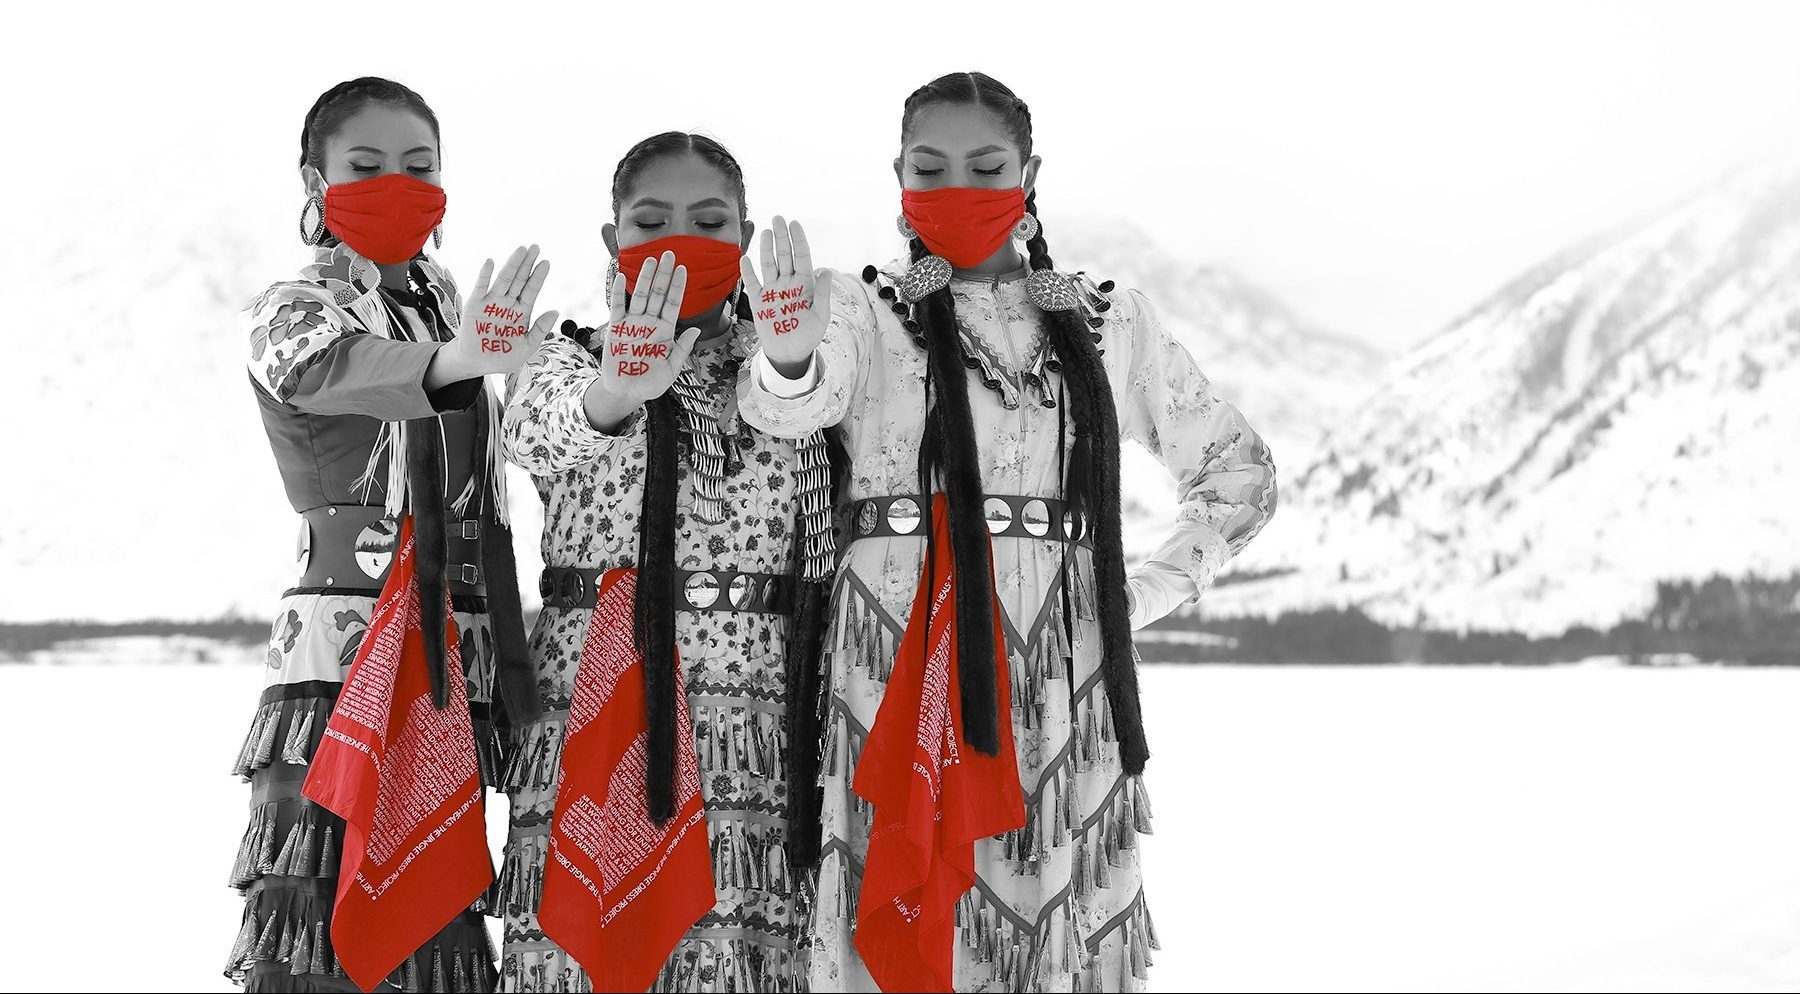 Why_We_Wear_Red_Snow